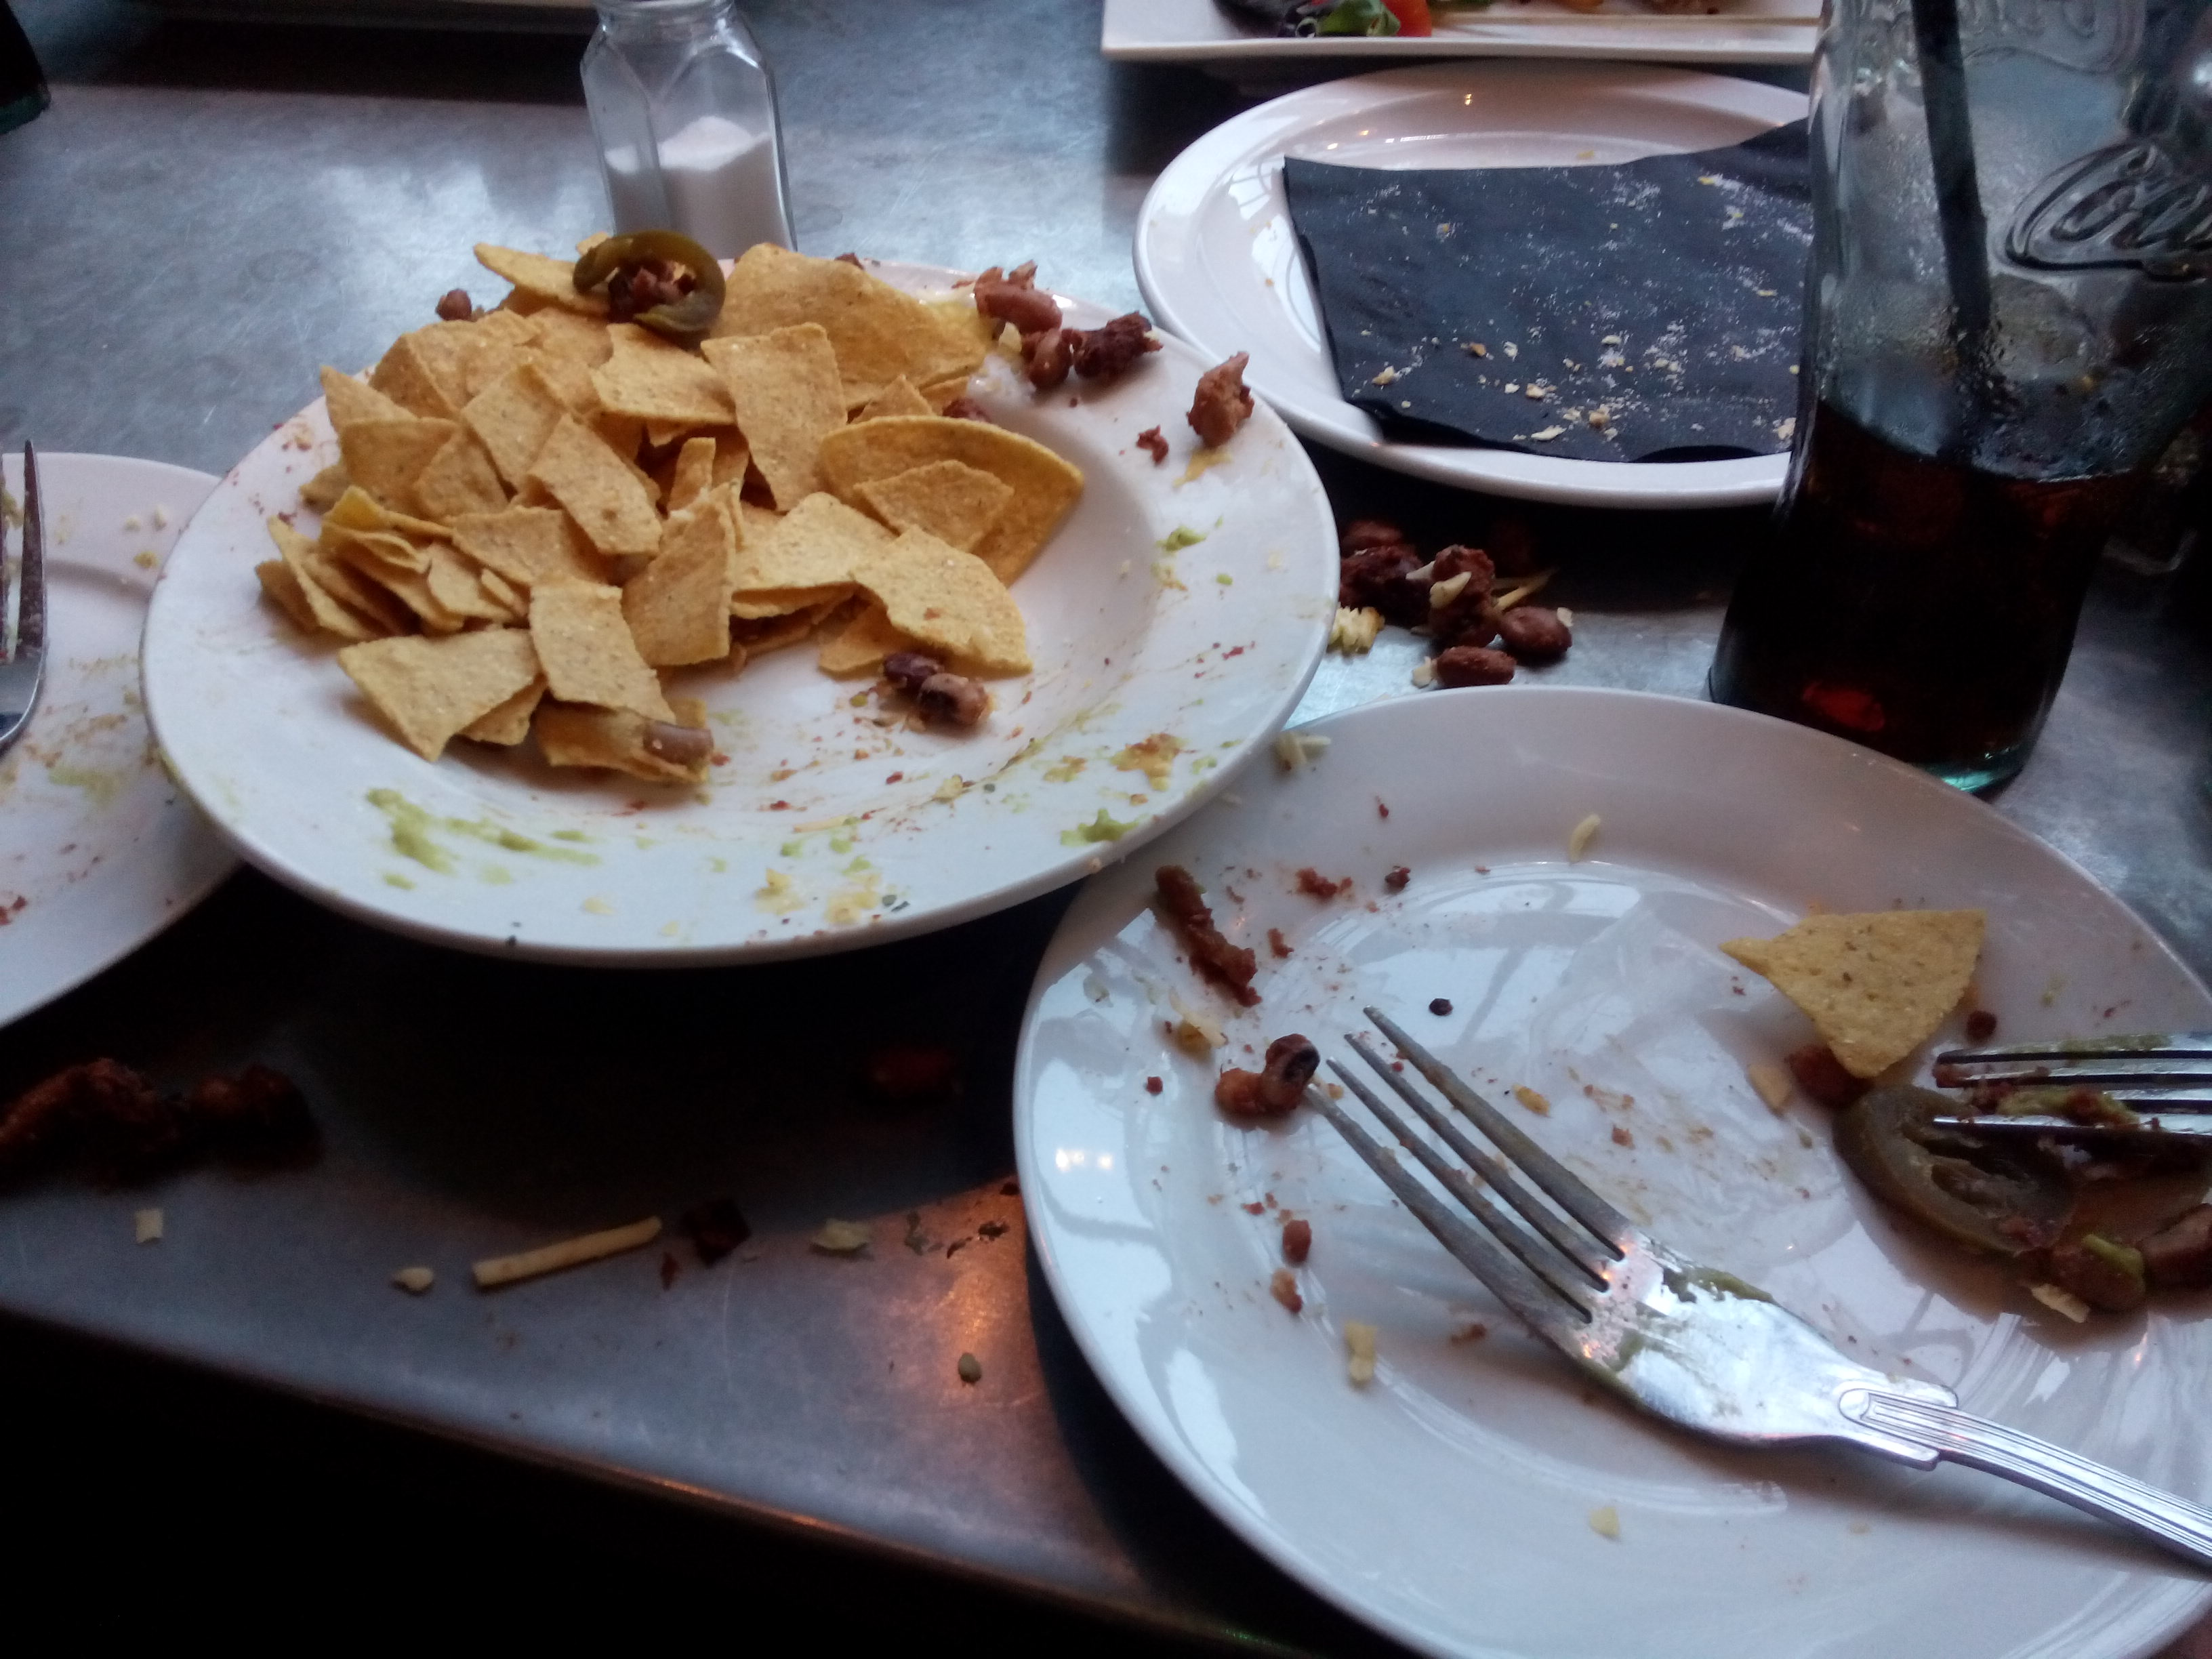 A couple of white plates with leftover tortilla chips and the odd jalapeno. Some beans on the table.